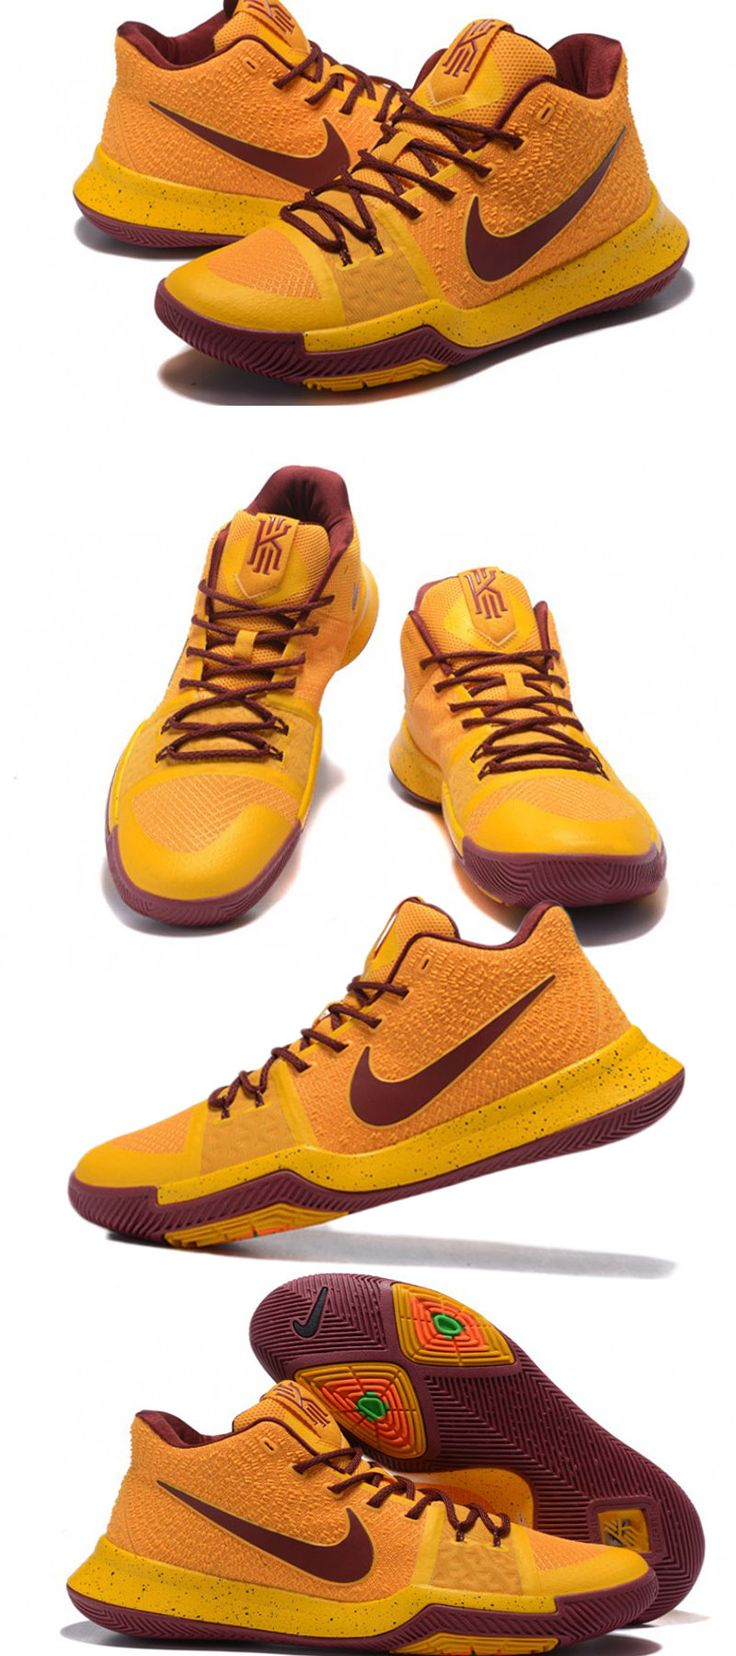 #NikeKyrie3 #Shoes #KyrieLrving #BasketballShoes #AllStarGame #SHOES Now strap-less and with more traditional Swoosh branding, the Nike Kyrie 3 denotes a taped forefoot alongside a reshaped outsole for greater traction to aid in Irvin's quick cuts and ability to stop on a dime - See more at: http://www.inbamart.com/kyrie-irving-Gear/zoom-kyrie-3-nike-mens-basketball-shoes-5